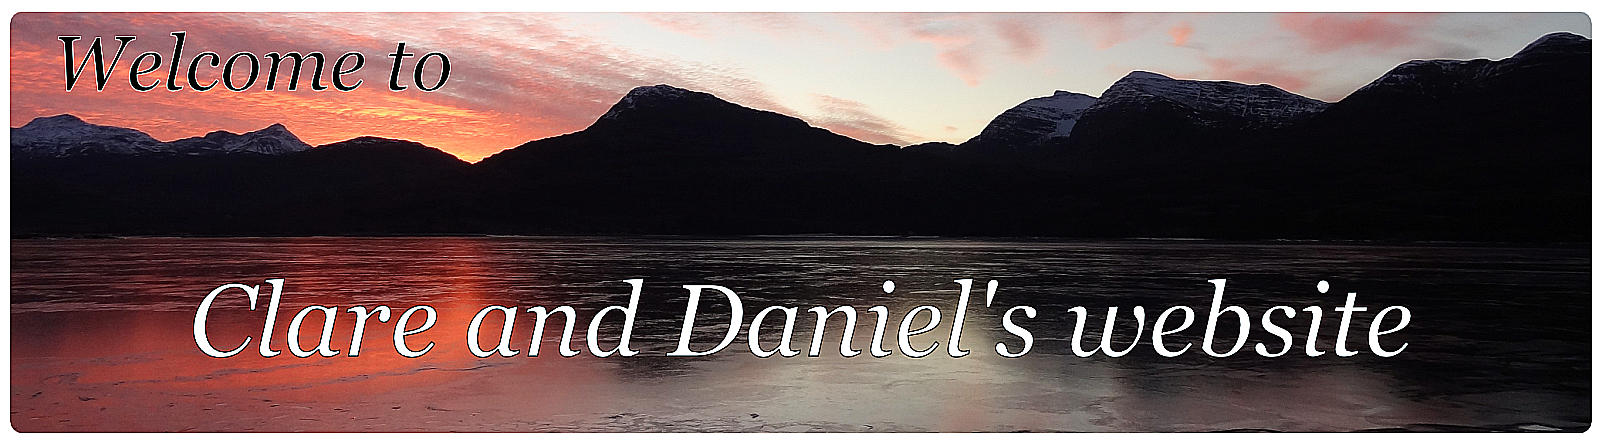 Welcome to Clare and Daniel's website